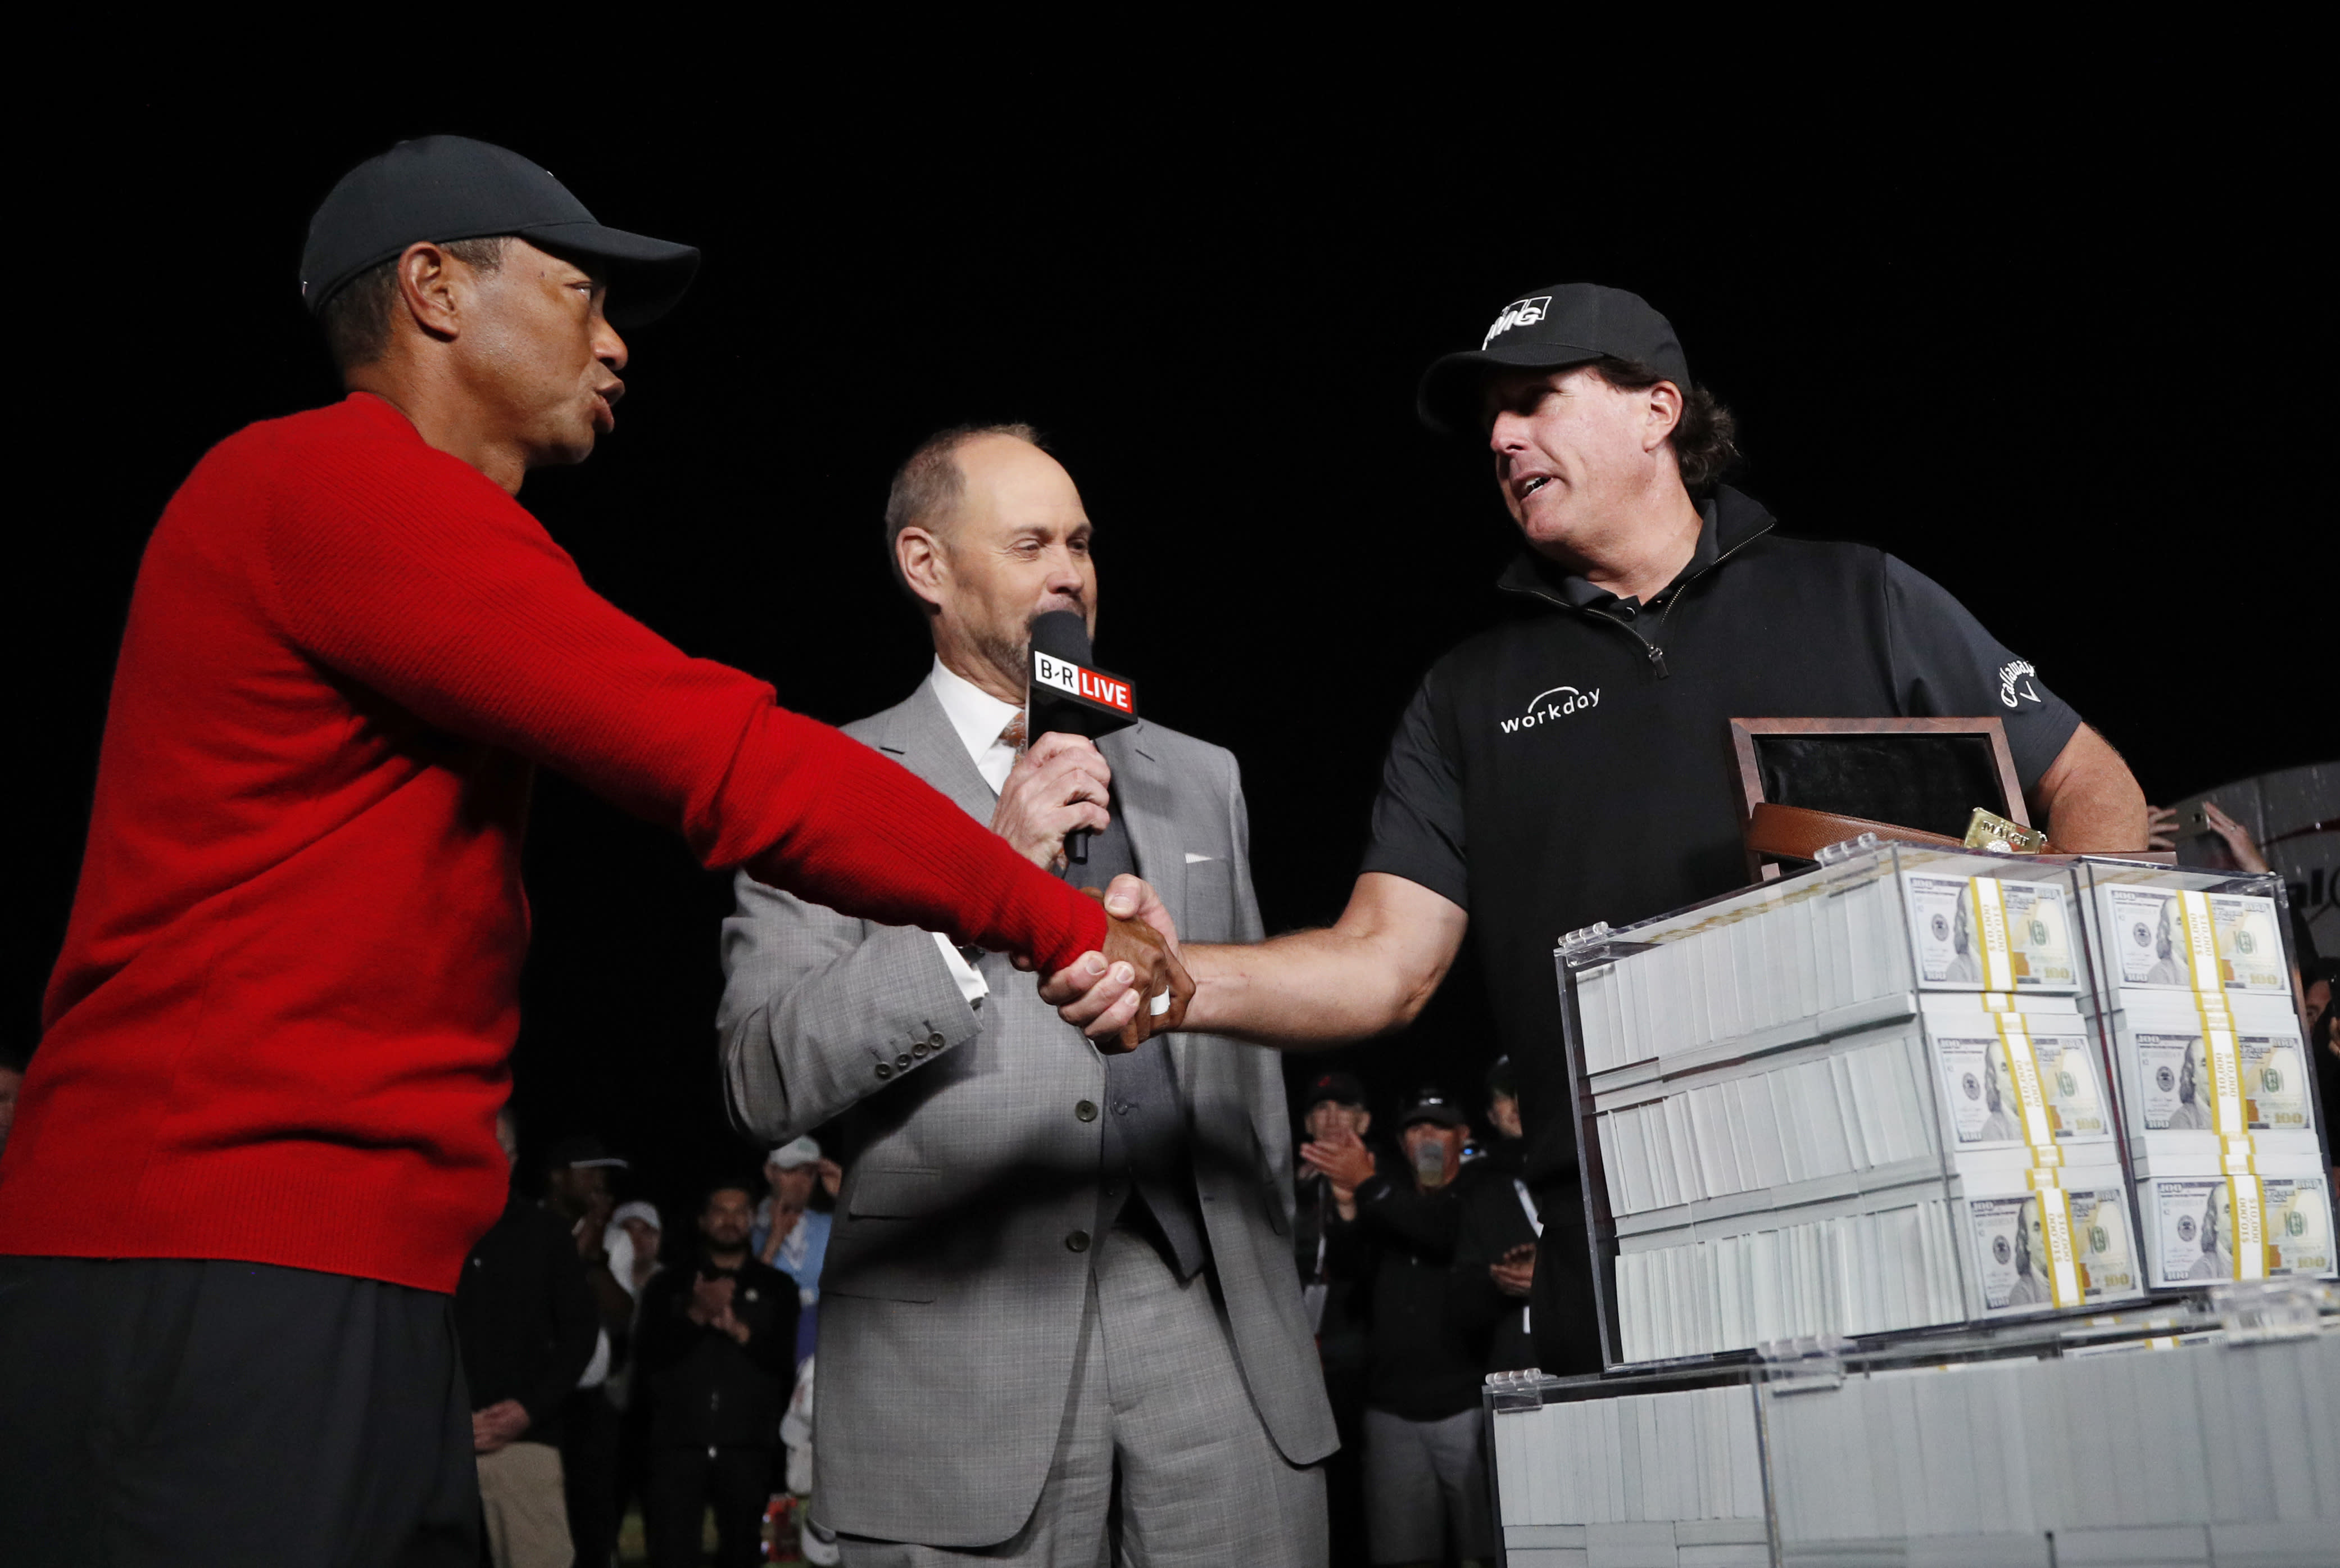 """<a class=""""link rapid-noclick-resp"""" href=""""/pga/players/147/"""" data-ylk=""""slk:Tiger Woods"""">Tiger Woods</a> congratulates Phil Mickelson, who won $9 million in The Match. (AP)"""